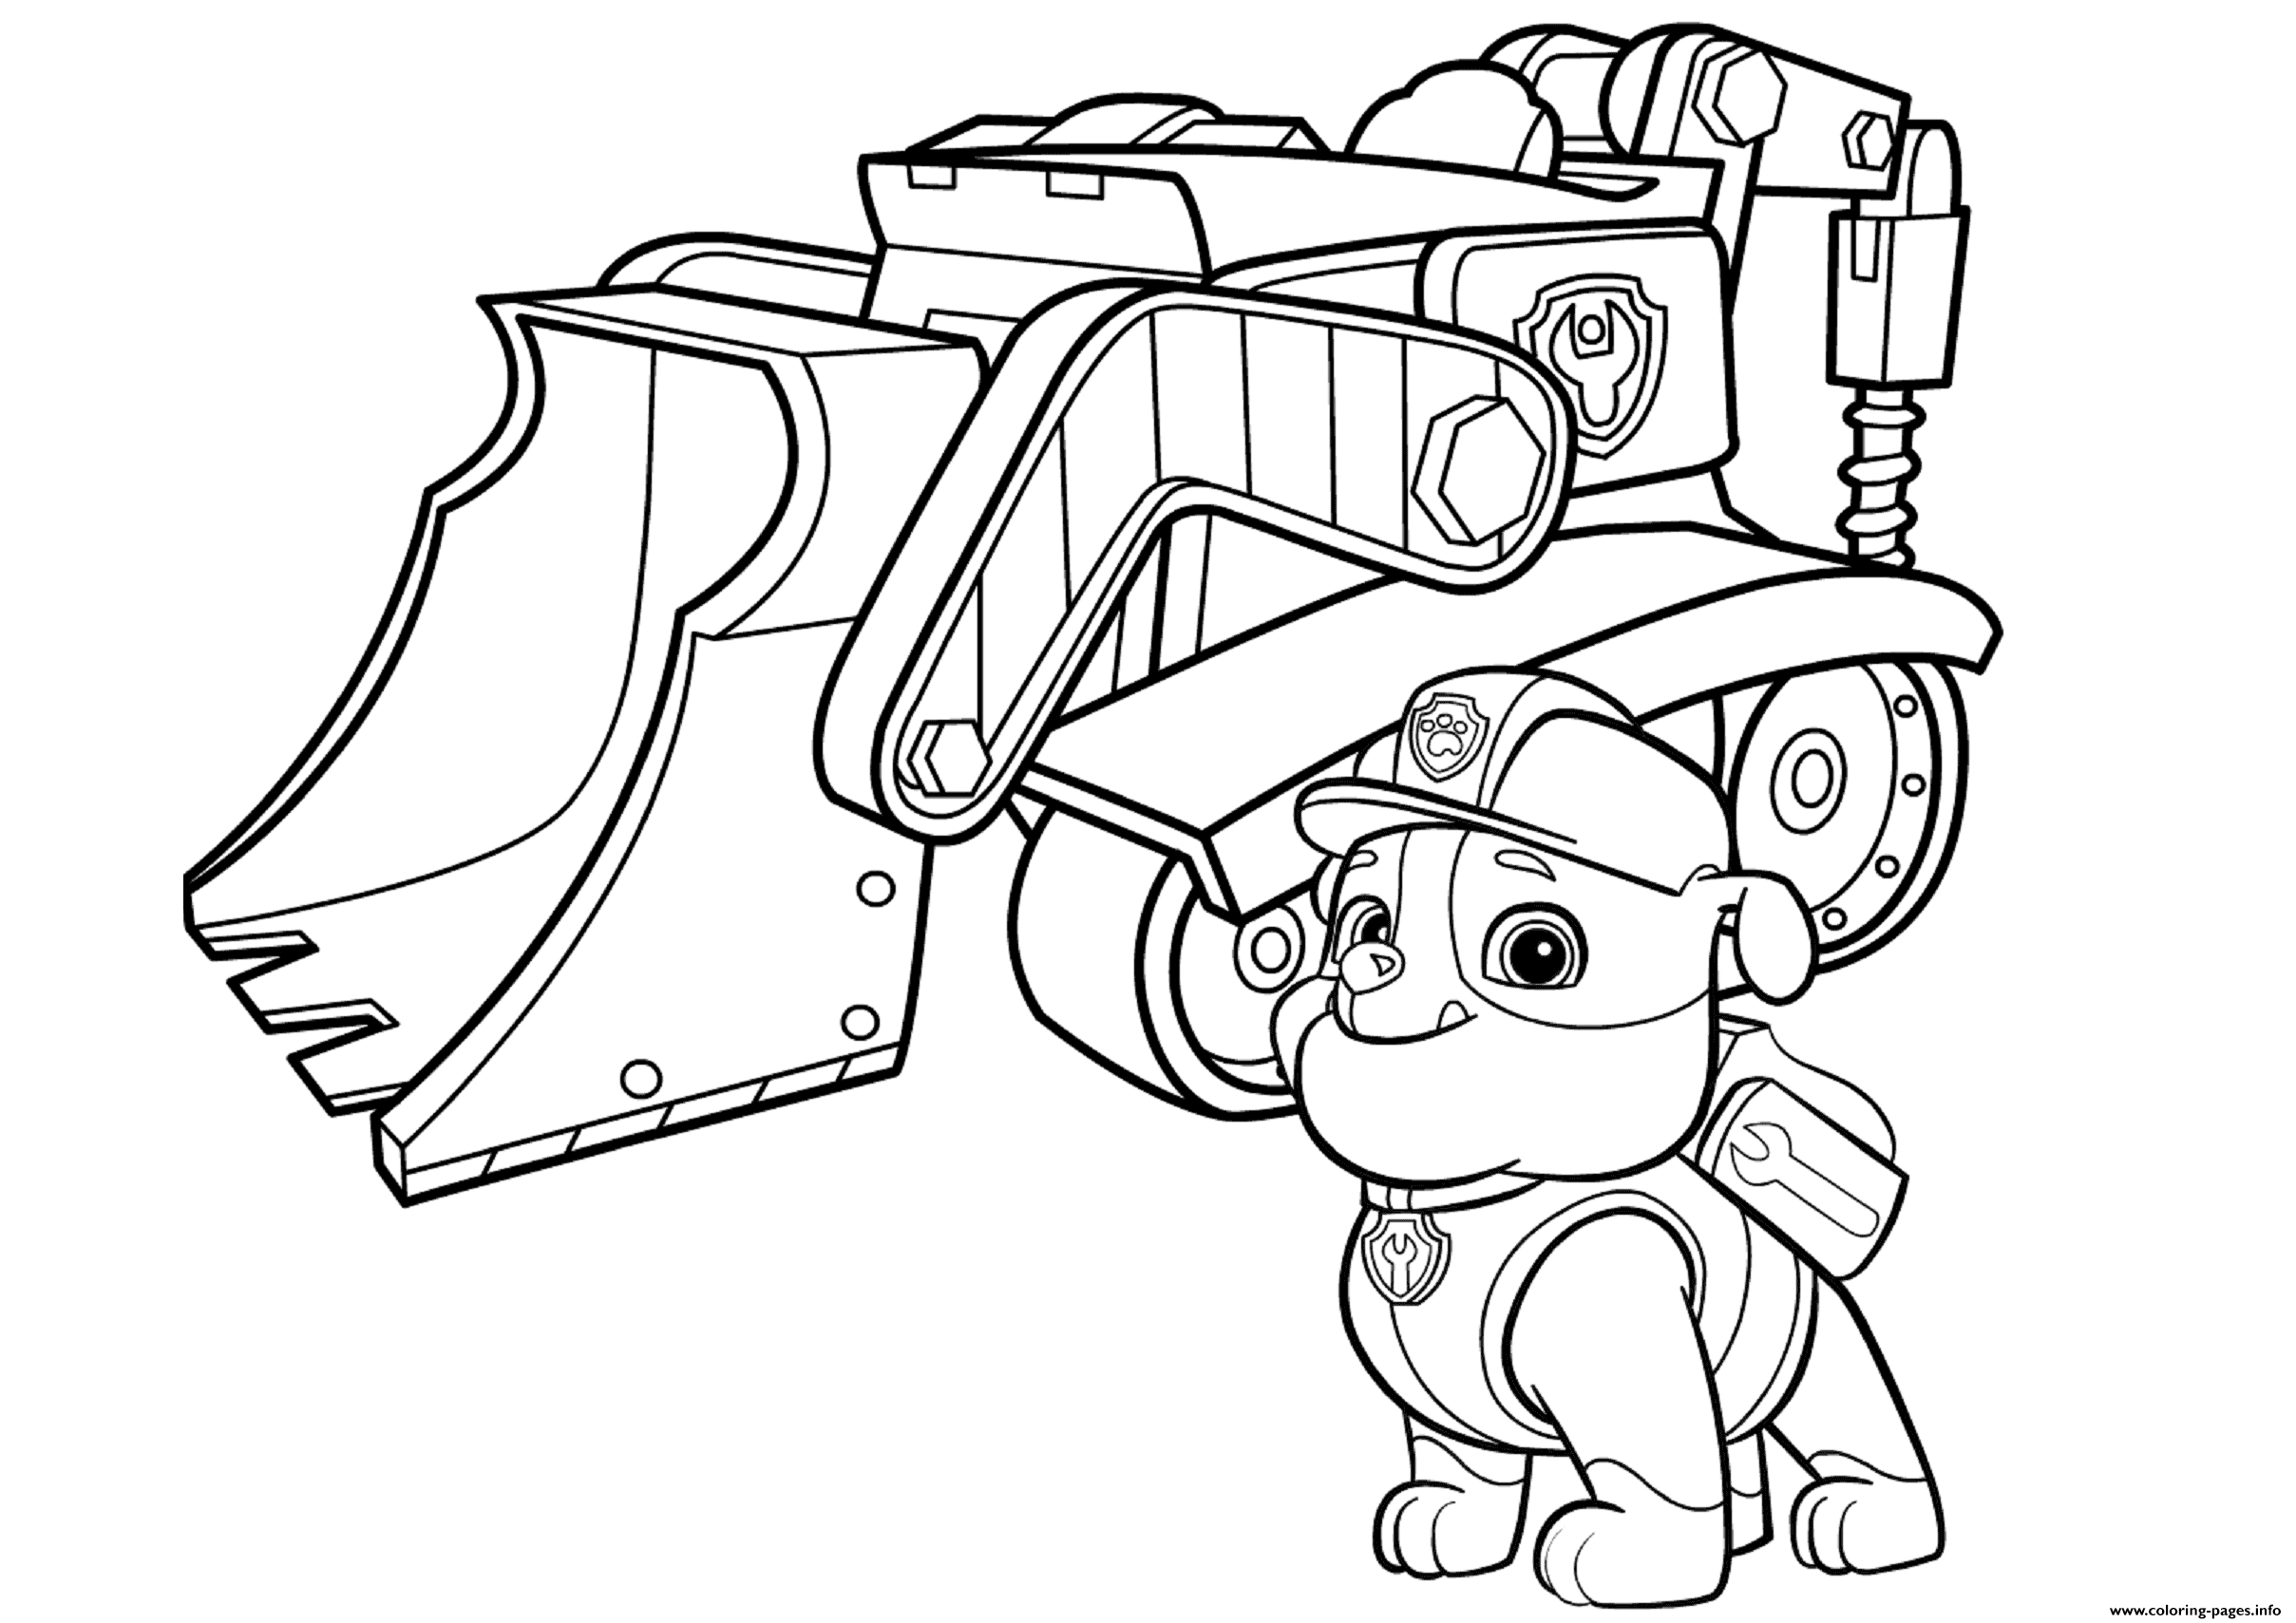 Paw Patrol Coloring Pages Printable 20f - Free For kids